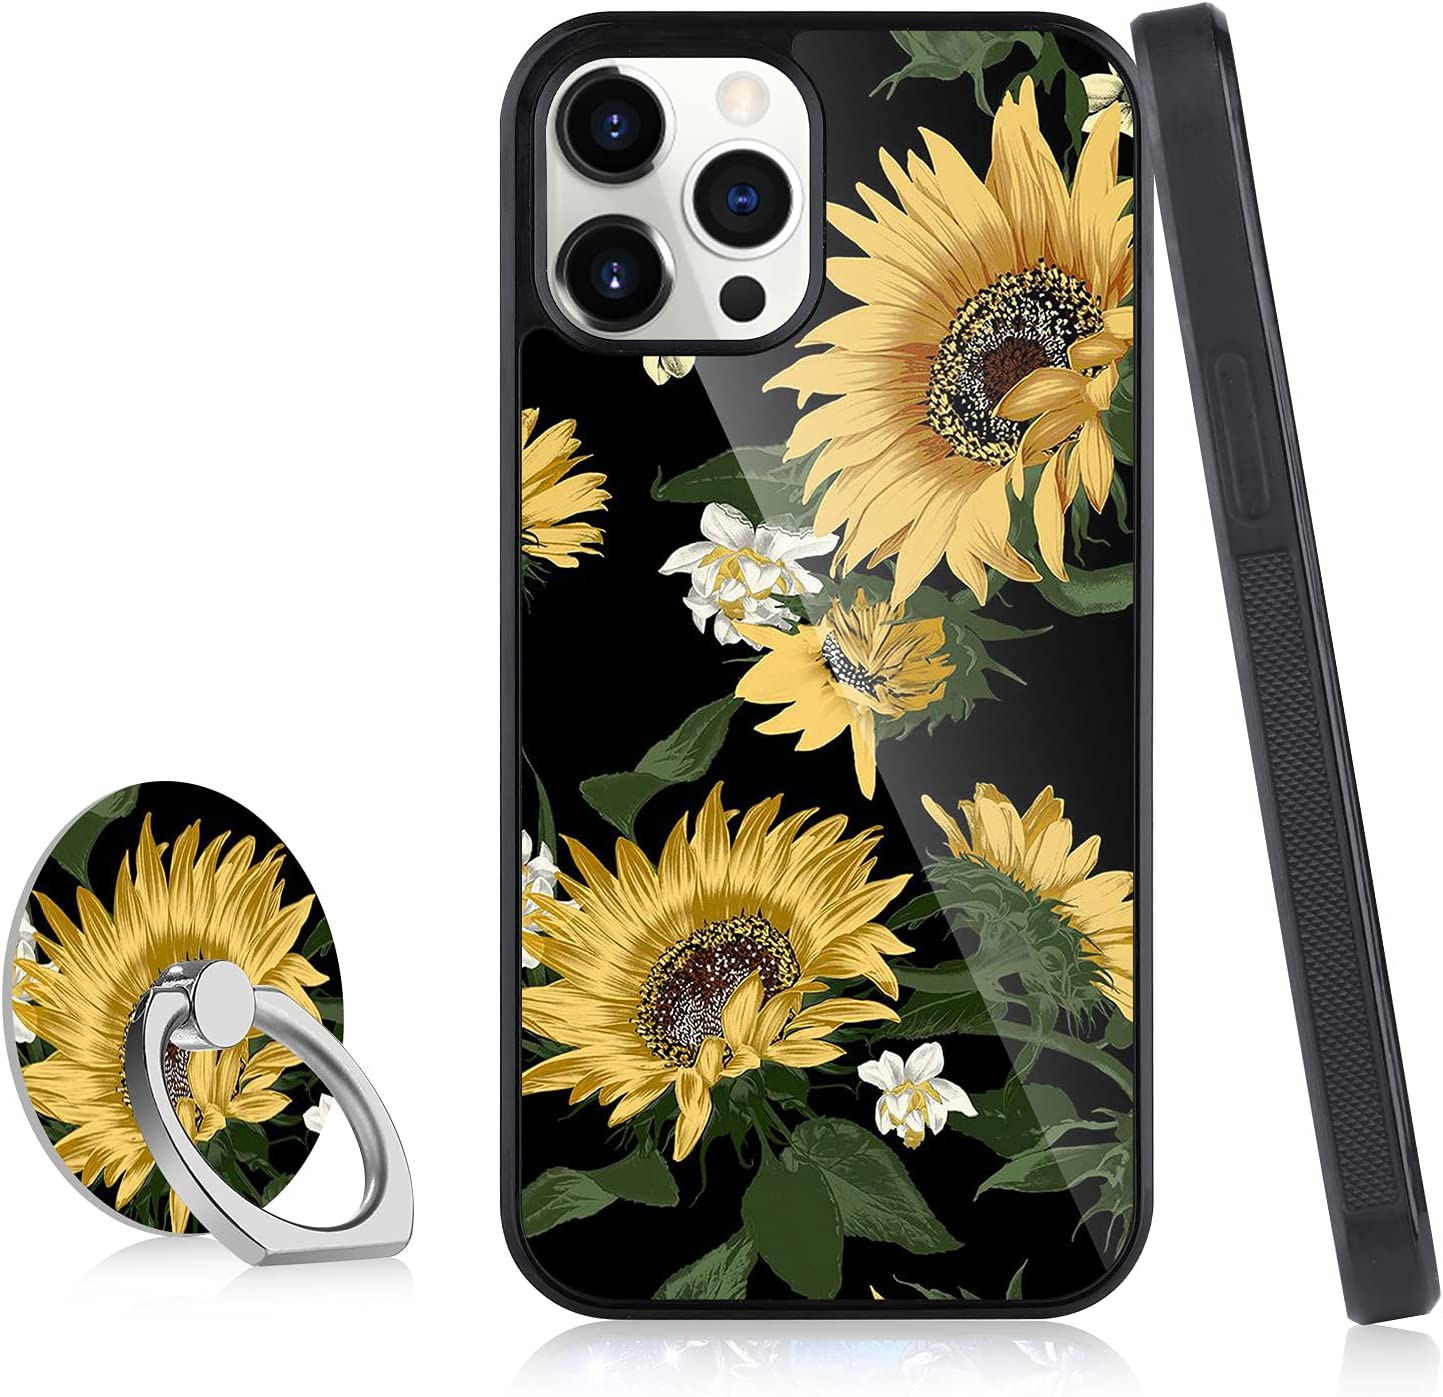 ITELINMON Compatible iPhone 13 Pro Case 6.1 in 2021, Sunflowers and Leaves Design with Cell Phone Ring Holder Tire Skid Outline Bumper Shockproof Thin Hard PC + Flexible TPU Edges Phone Case